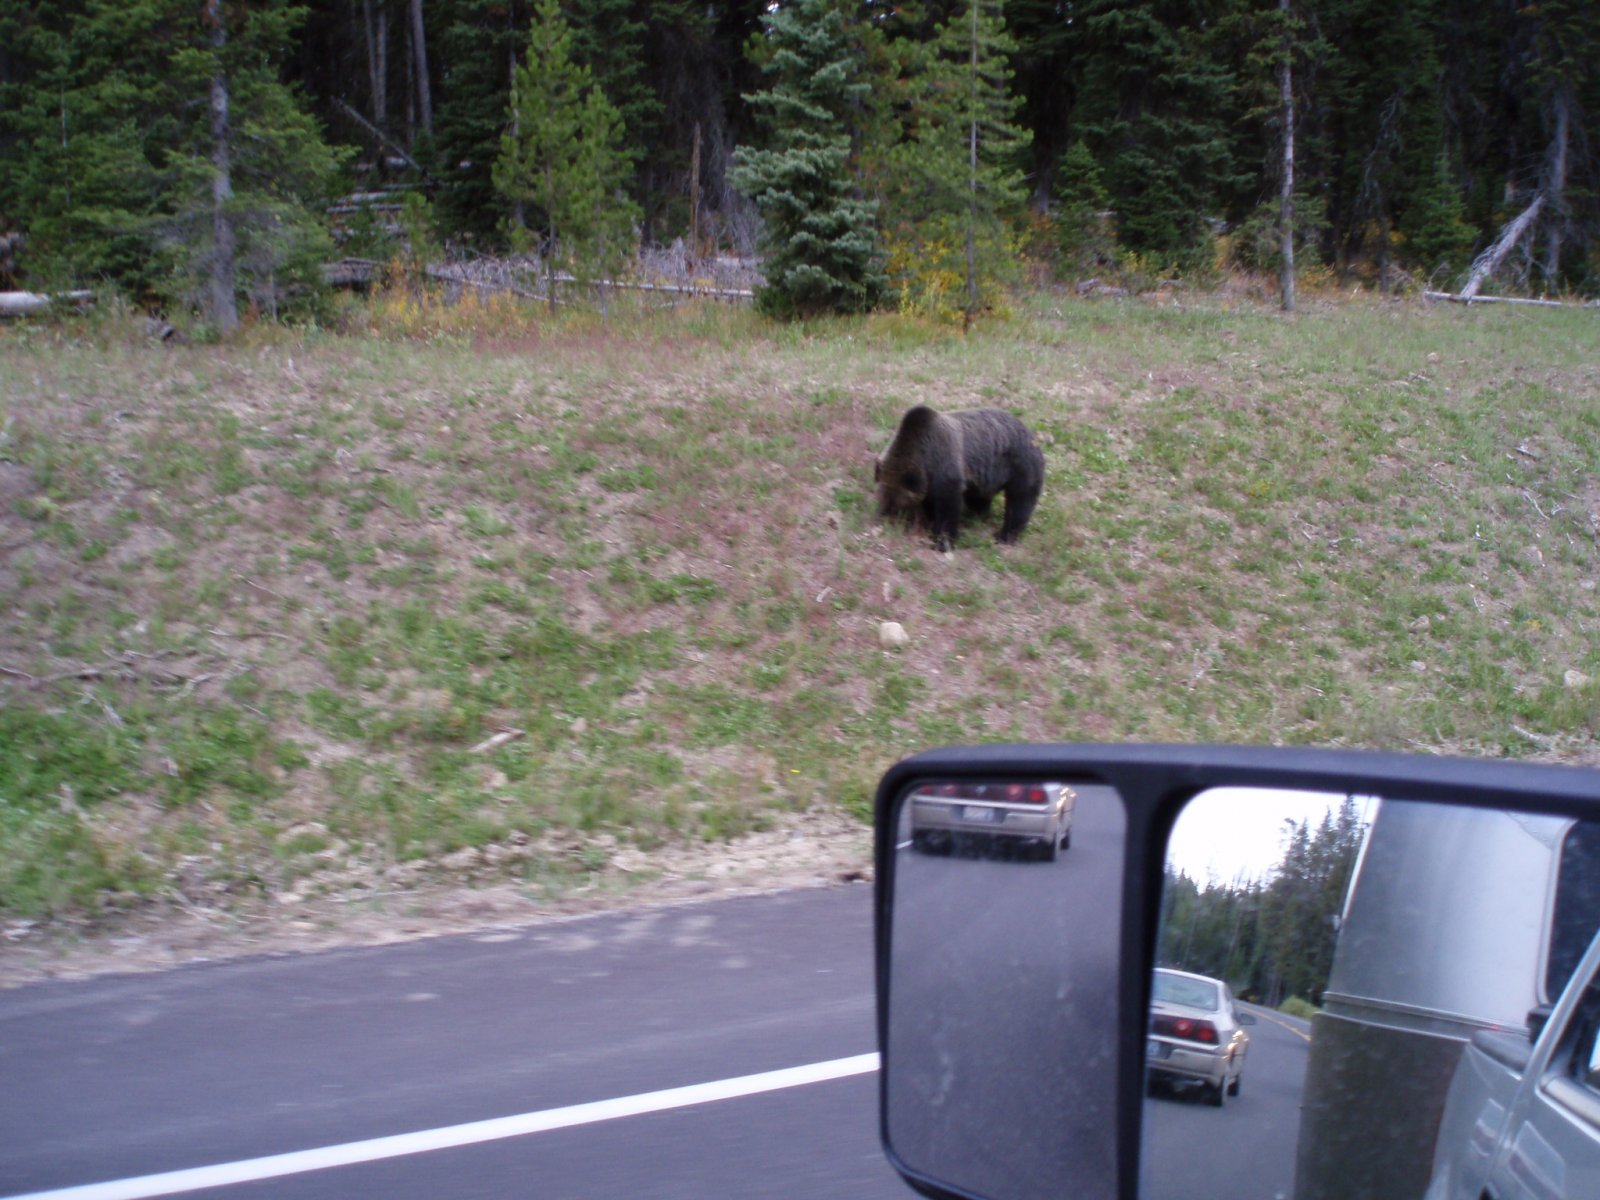 Click image for larger version  Name:Yellowstone and Rocky Mountain National Parks 2010 023.jpg Views:82 Size:312.7 KB ID:112341